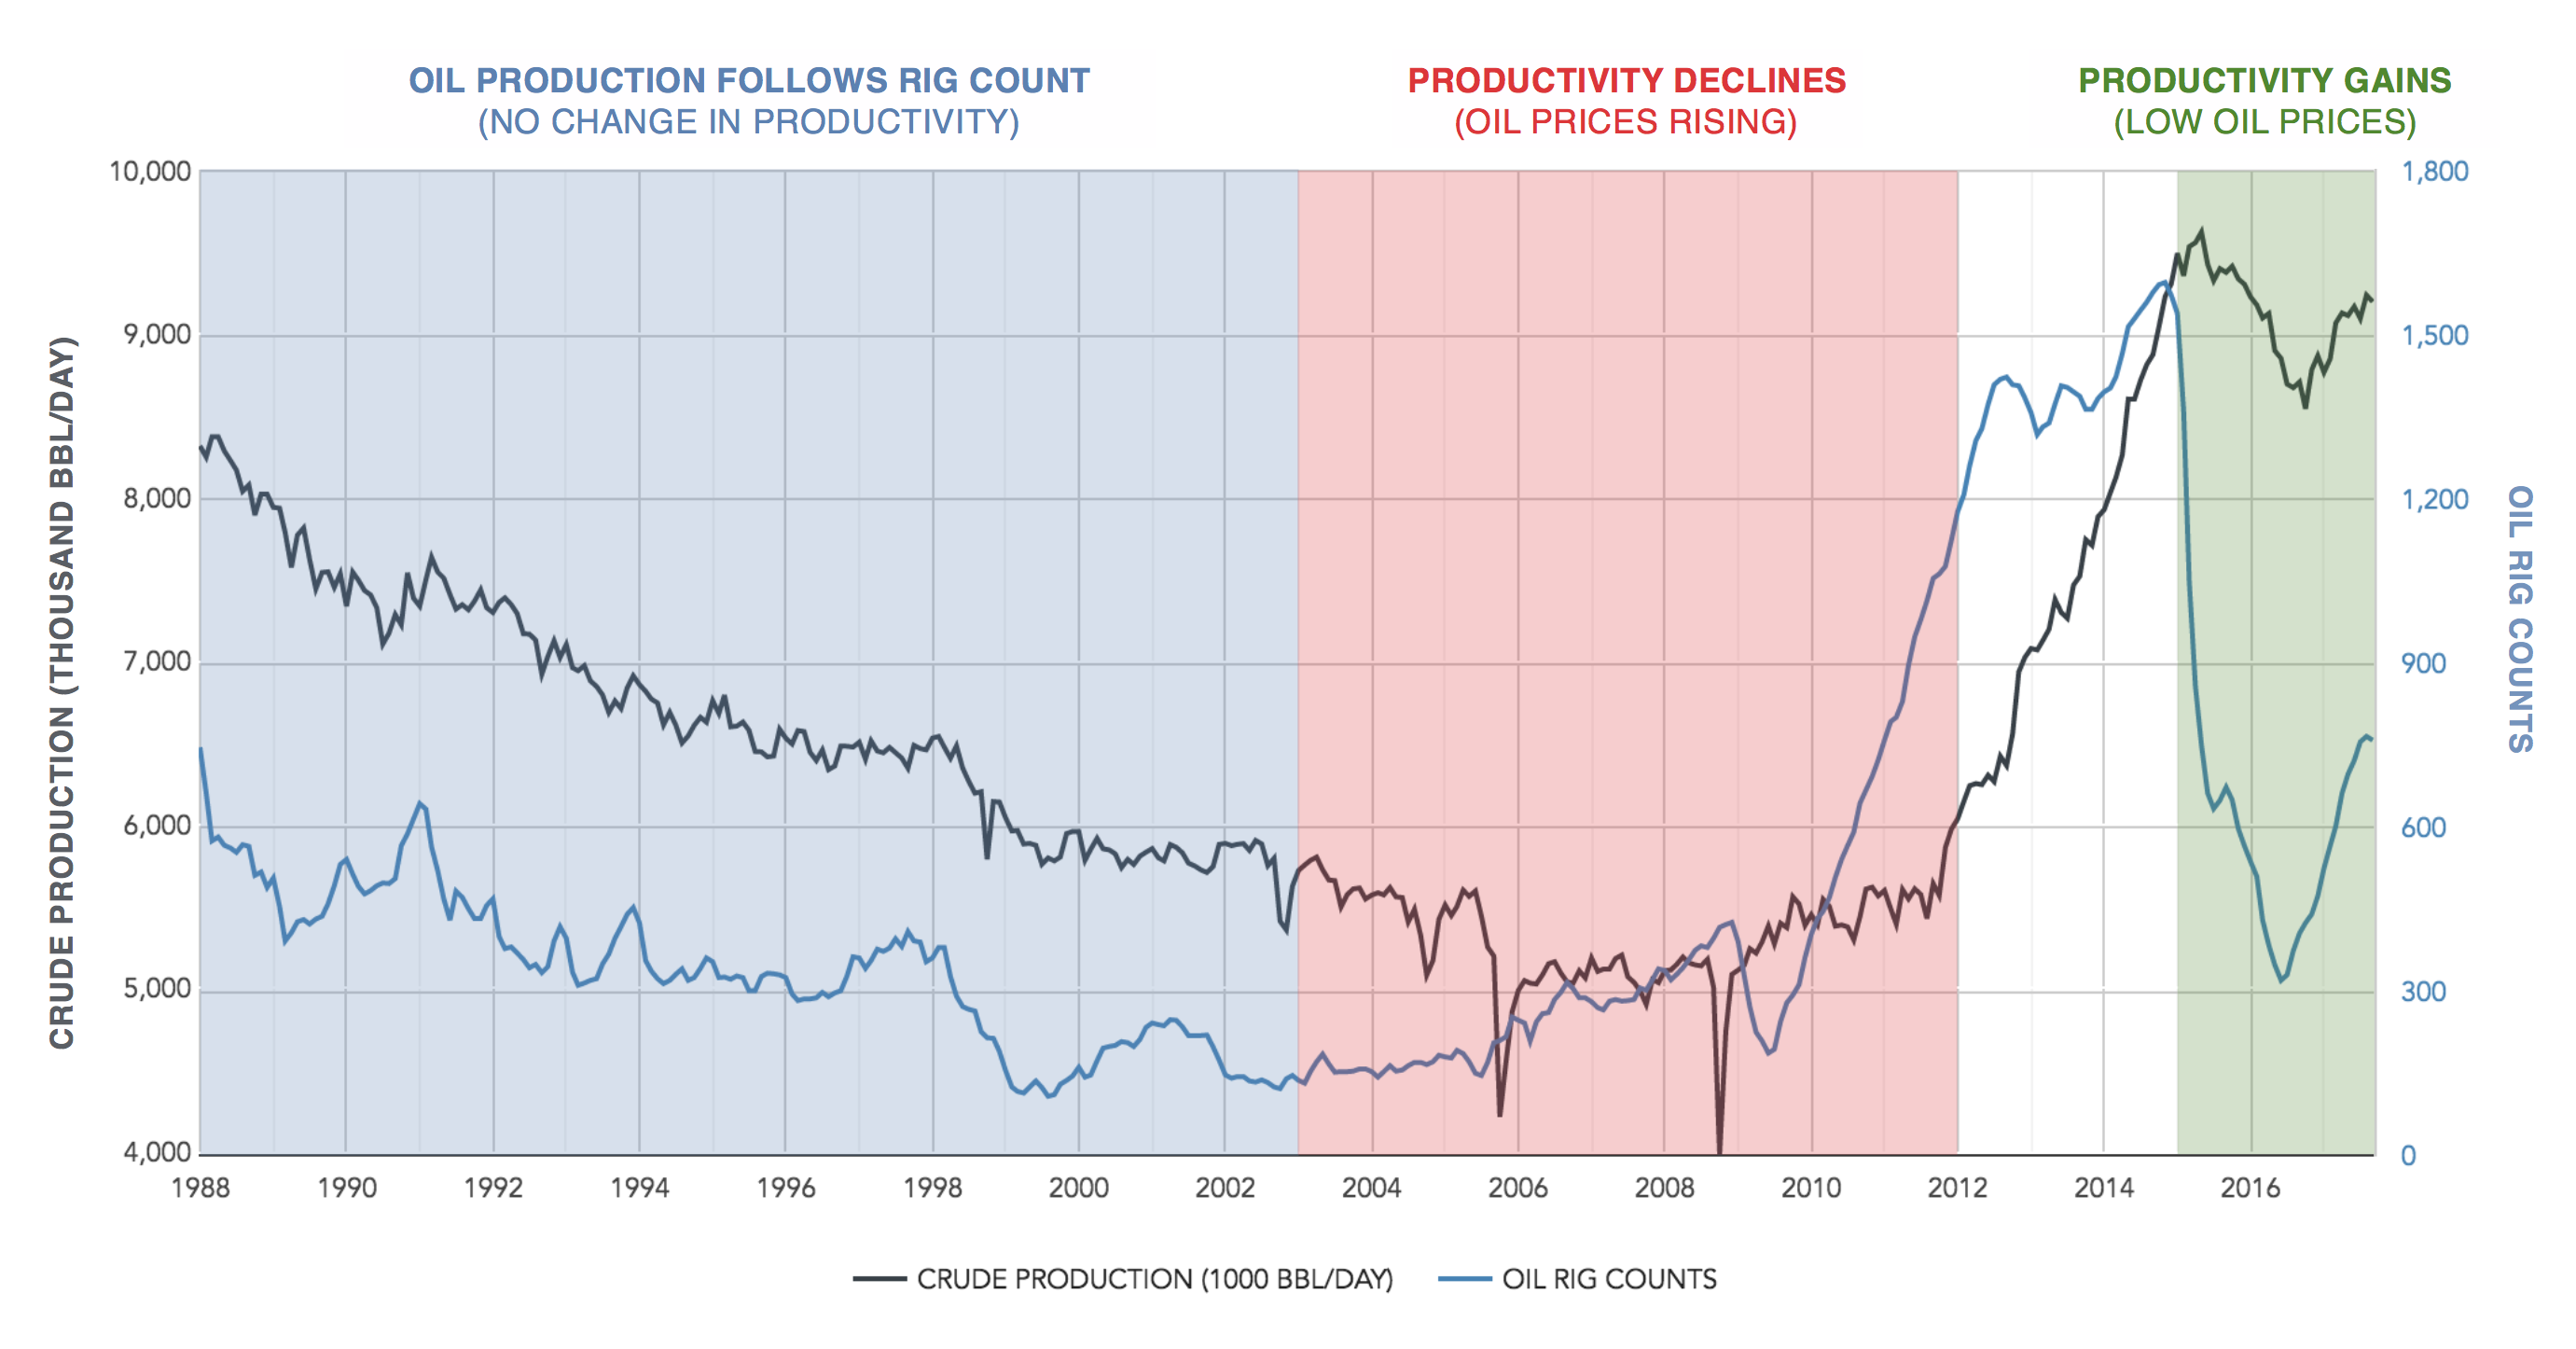 oil well productivity rig counts versus oil production